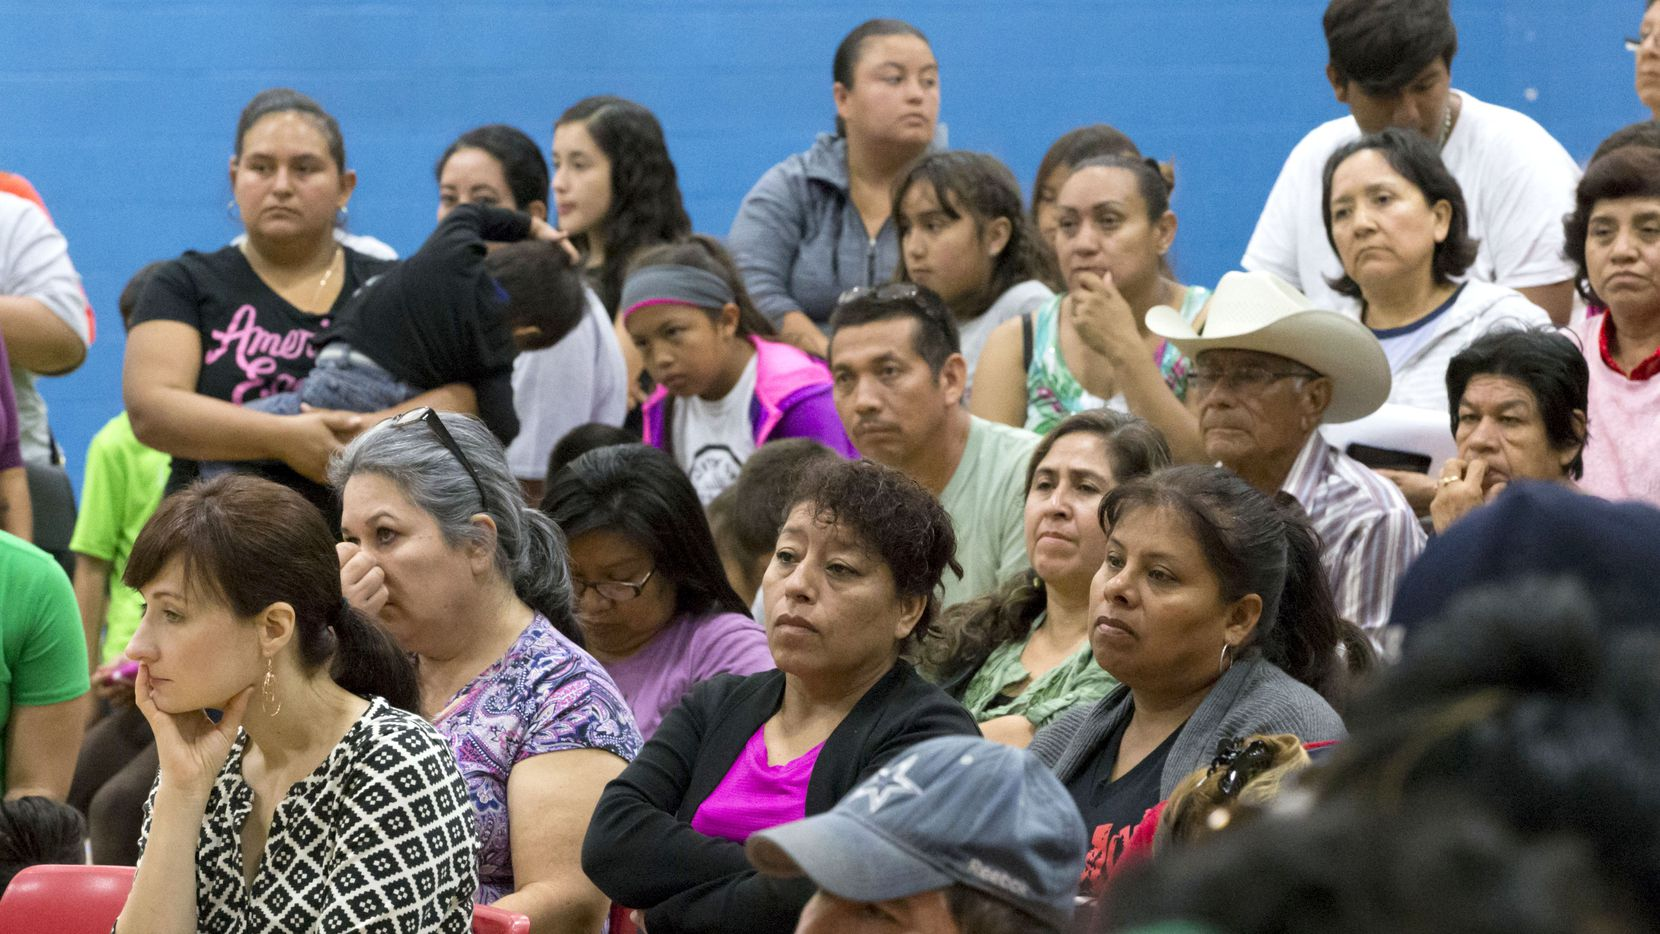 Community members listen to announcements during a community meeting regarding upcoming mass evictions in West Dallas by landlord HMK Ltd at Anita Martinez Recreation Center on Oct. 8, 2016 in Dallas.